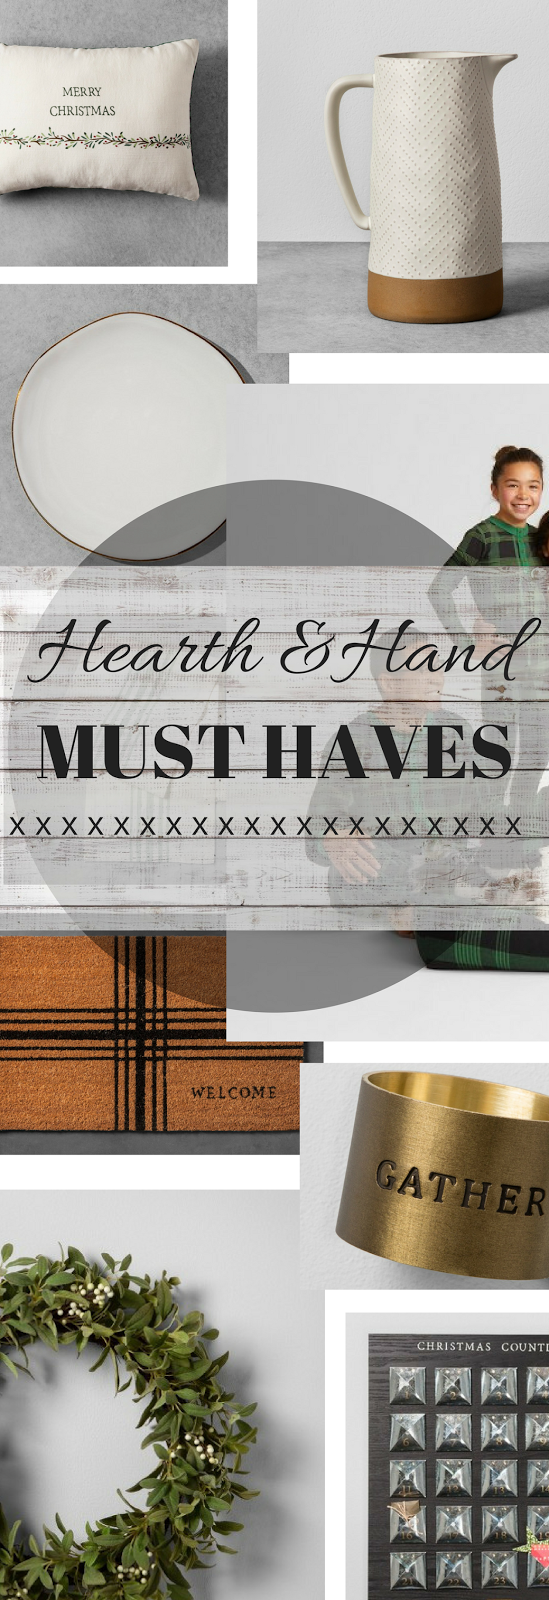 Hearth & Hand Must Haves; Magnolia Must Haves; Fixer Upper Decor; Joanna Gaines Decor; Target Style; Target Home; Target Decor; Magnolia for Target; Waco Texas Design